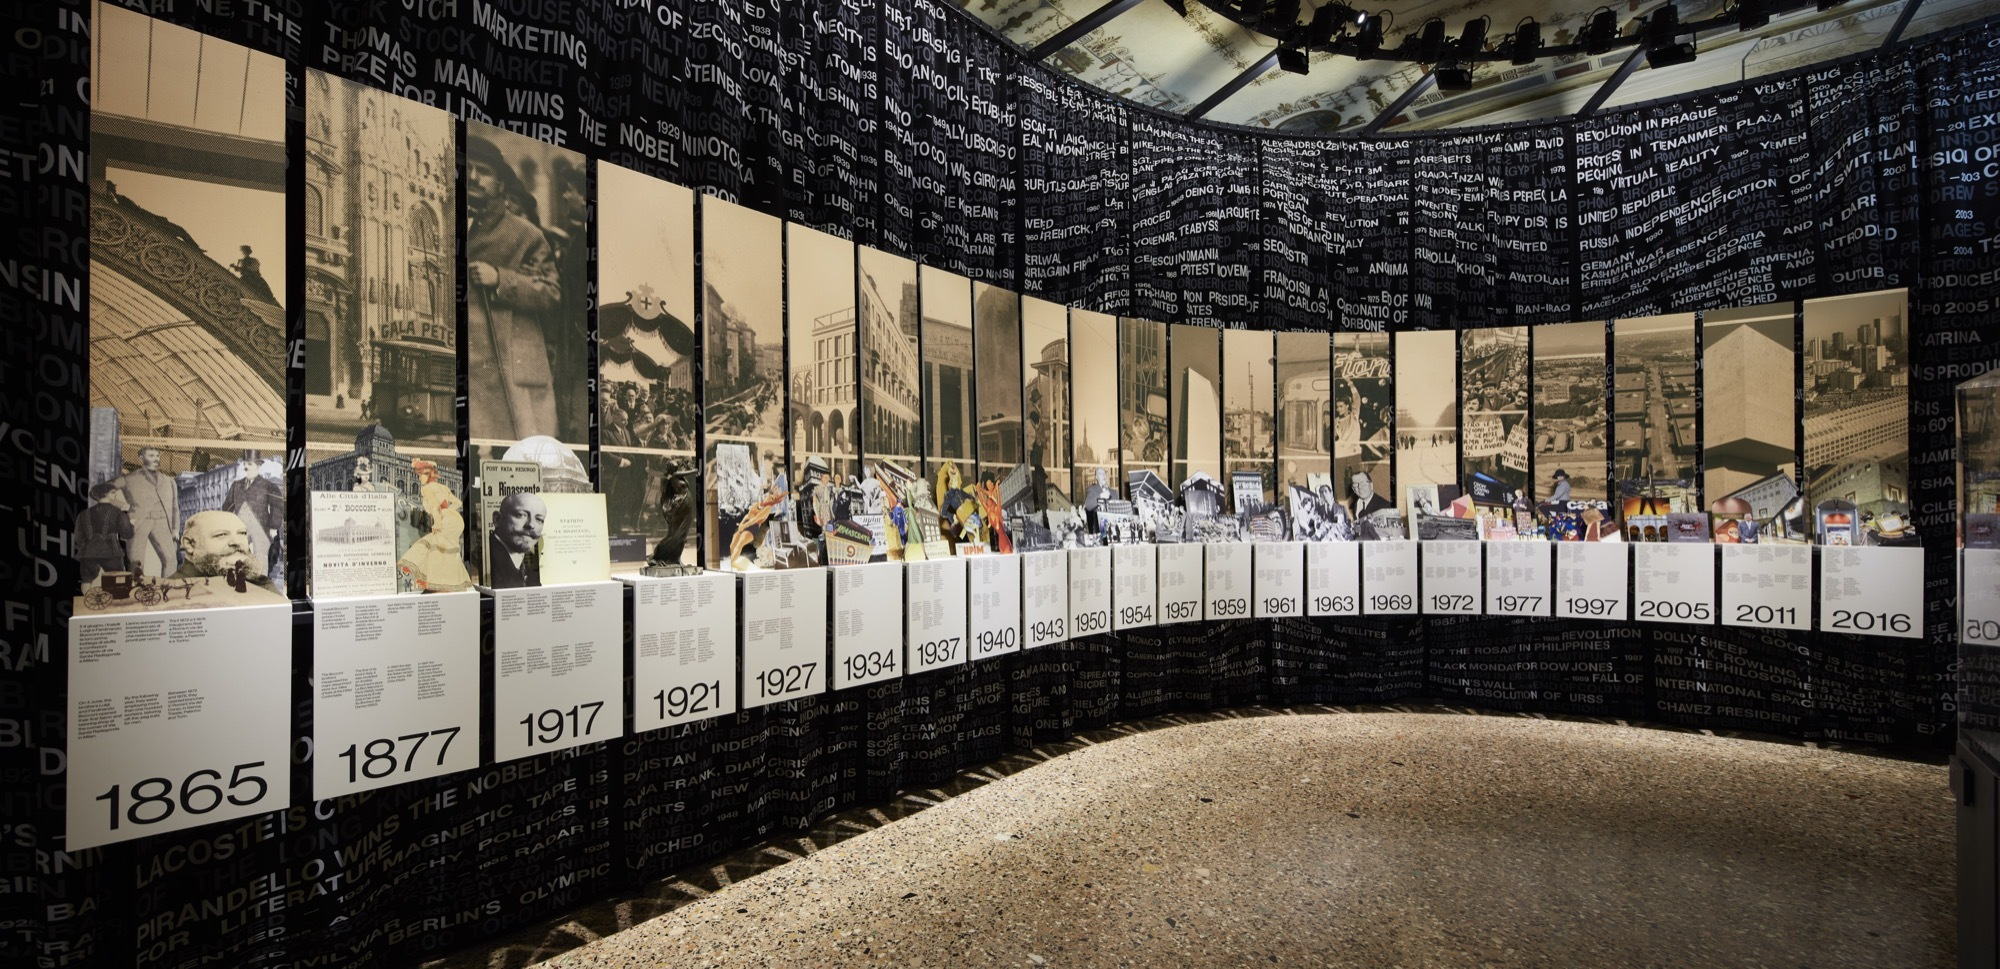 Exhibition Stand Design Competition : Oma amo designed exhibition lr rinascente stories of